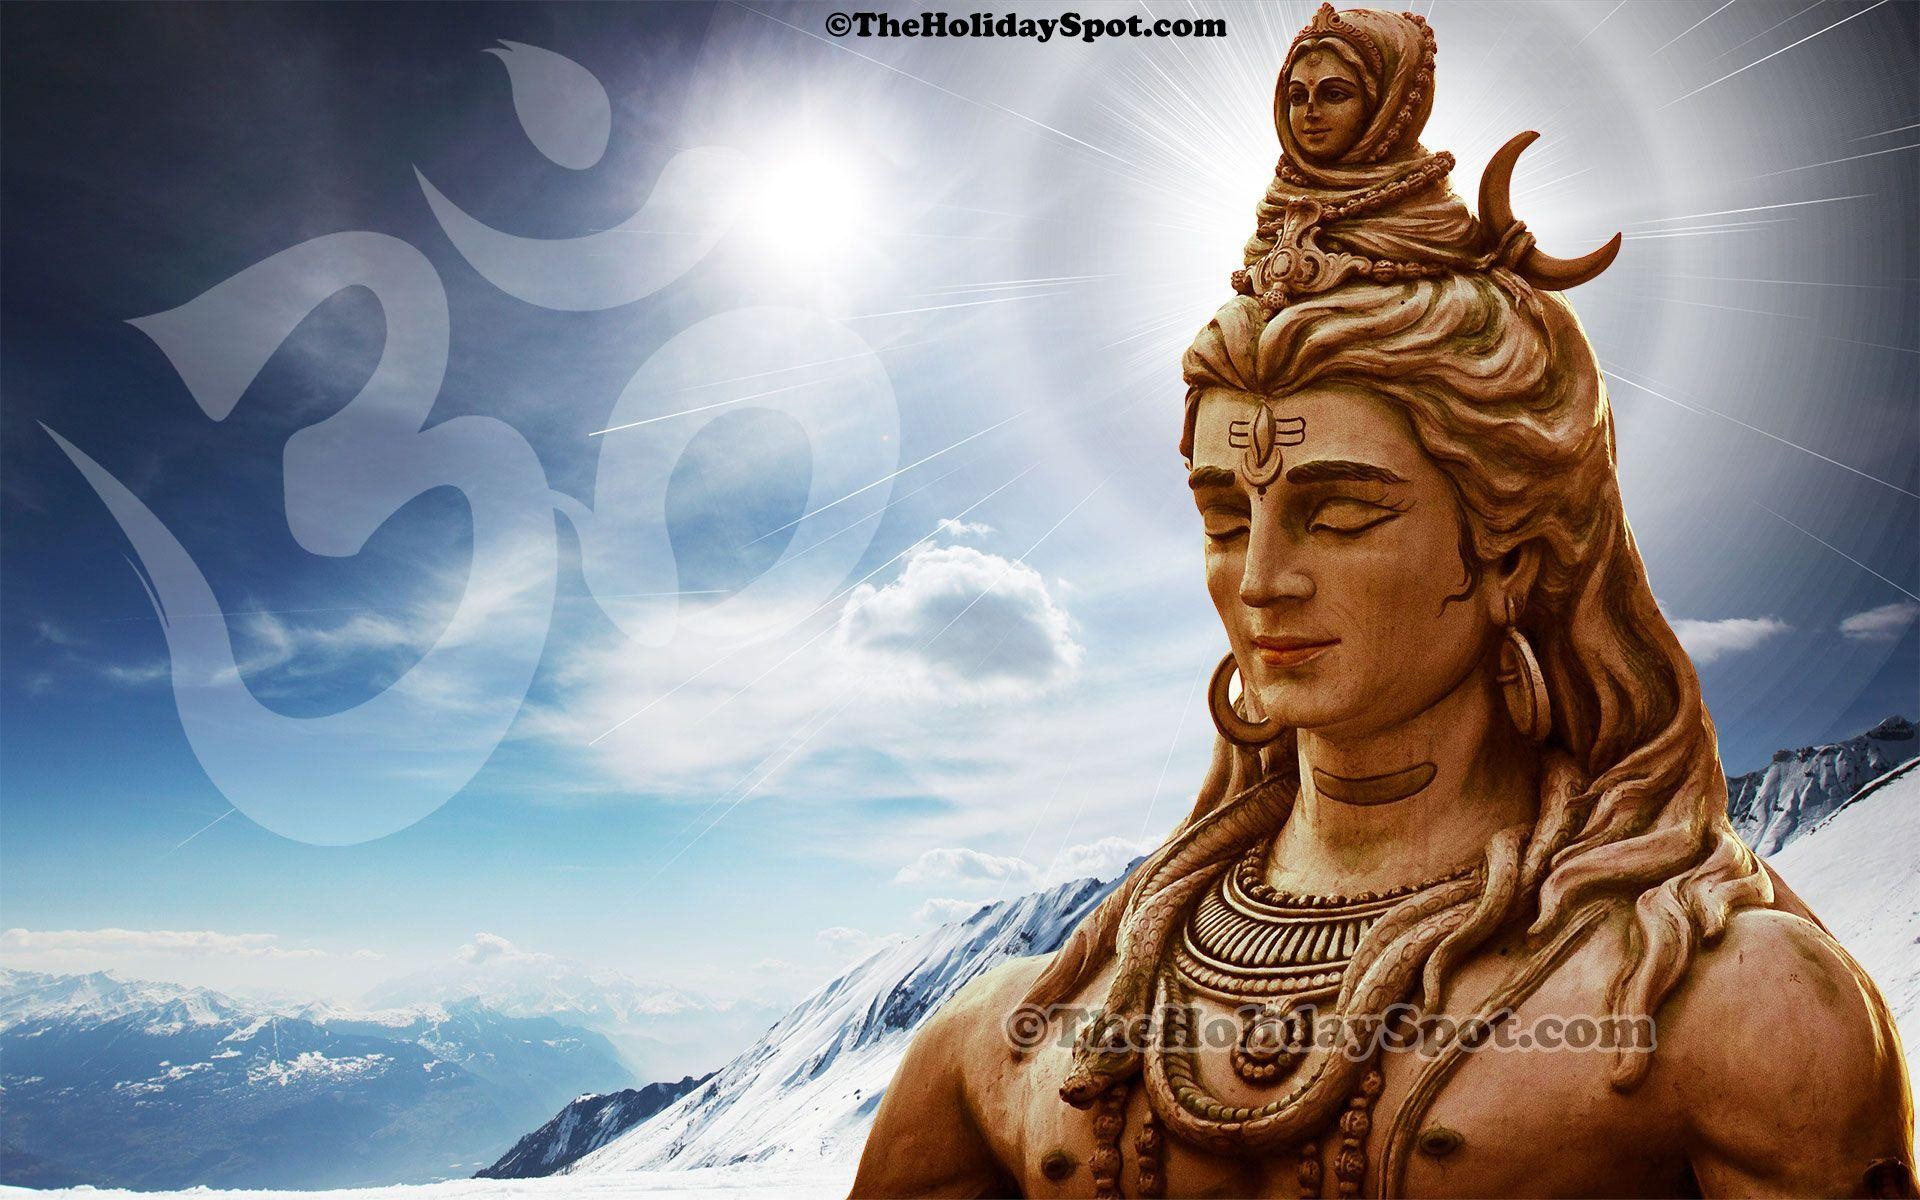 Hd Wallpaper for android God Awesome Lord Shiva Wallpapers